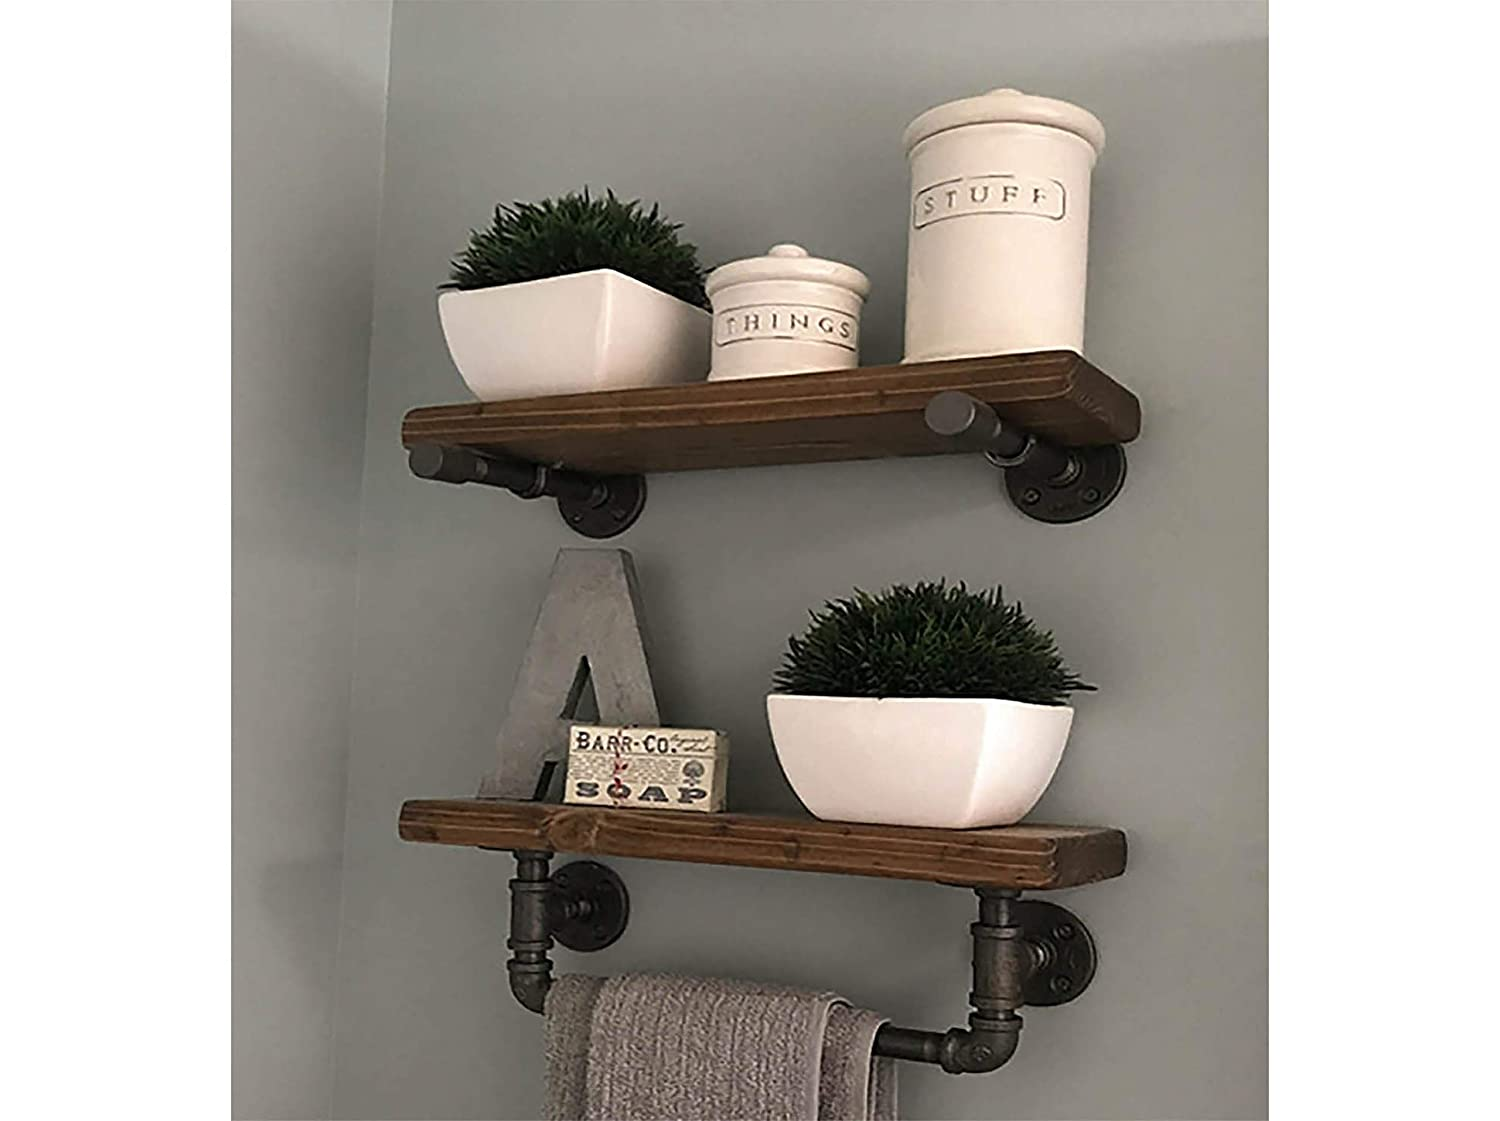 Towel Bar Bathroom Shelving 11 Shelf Set with Towel Bar Farmhouse Bathroom  Decor